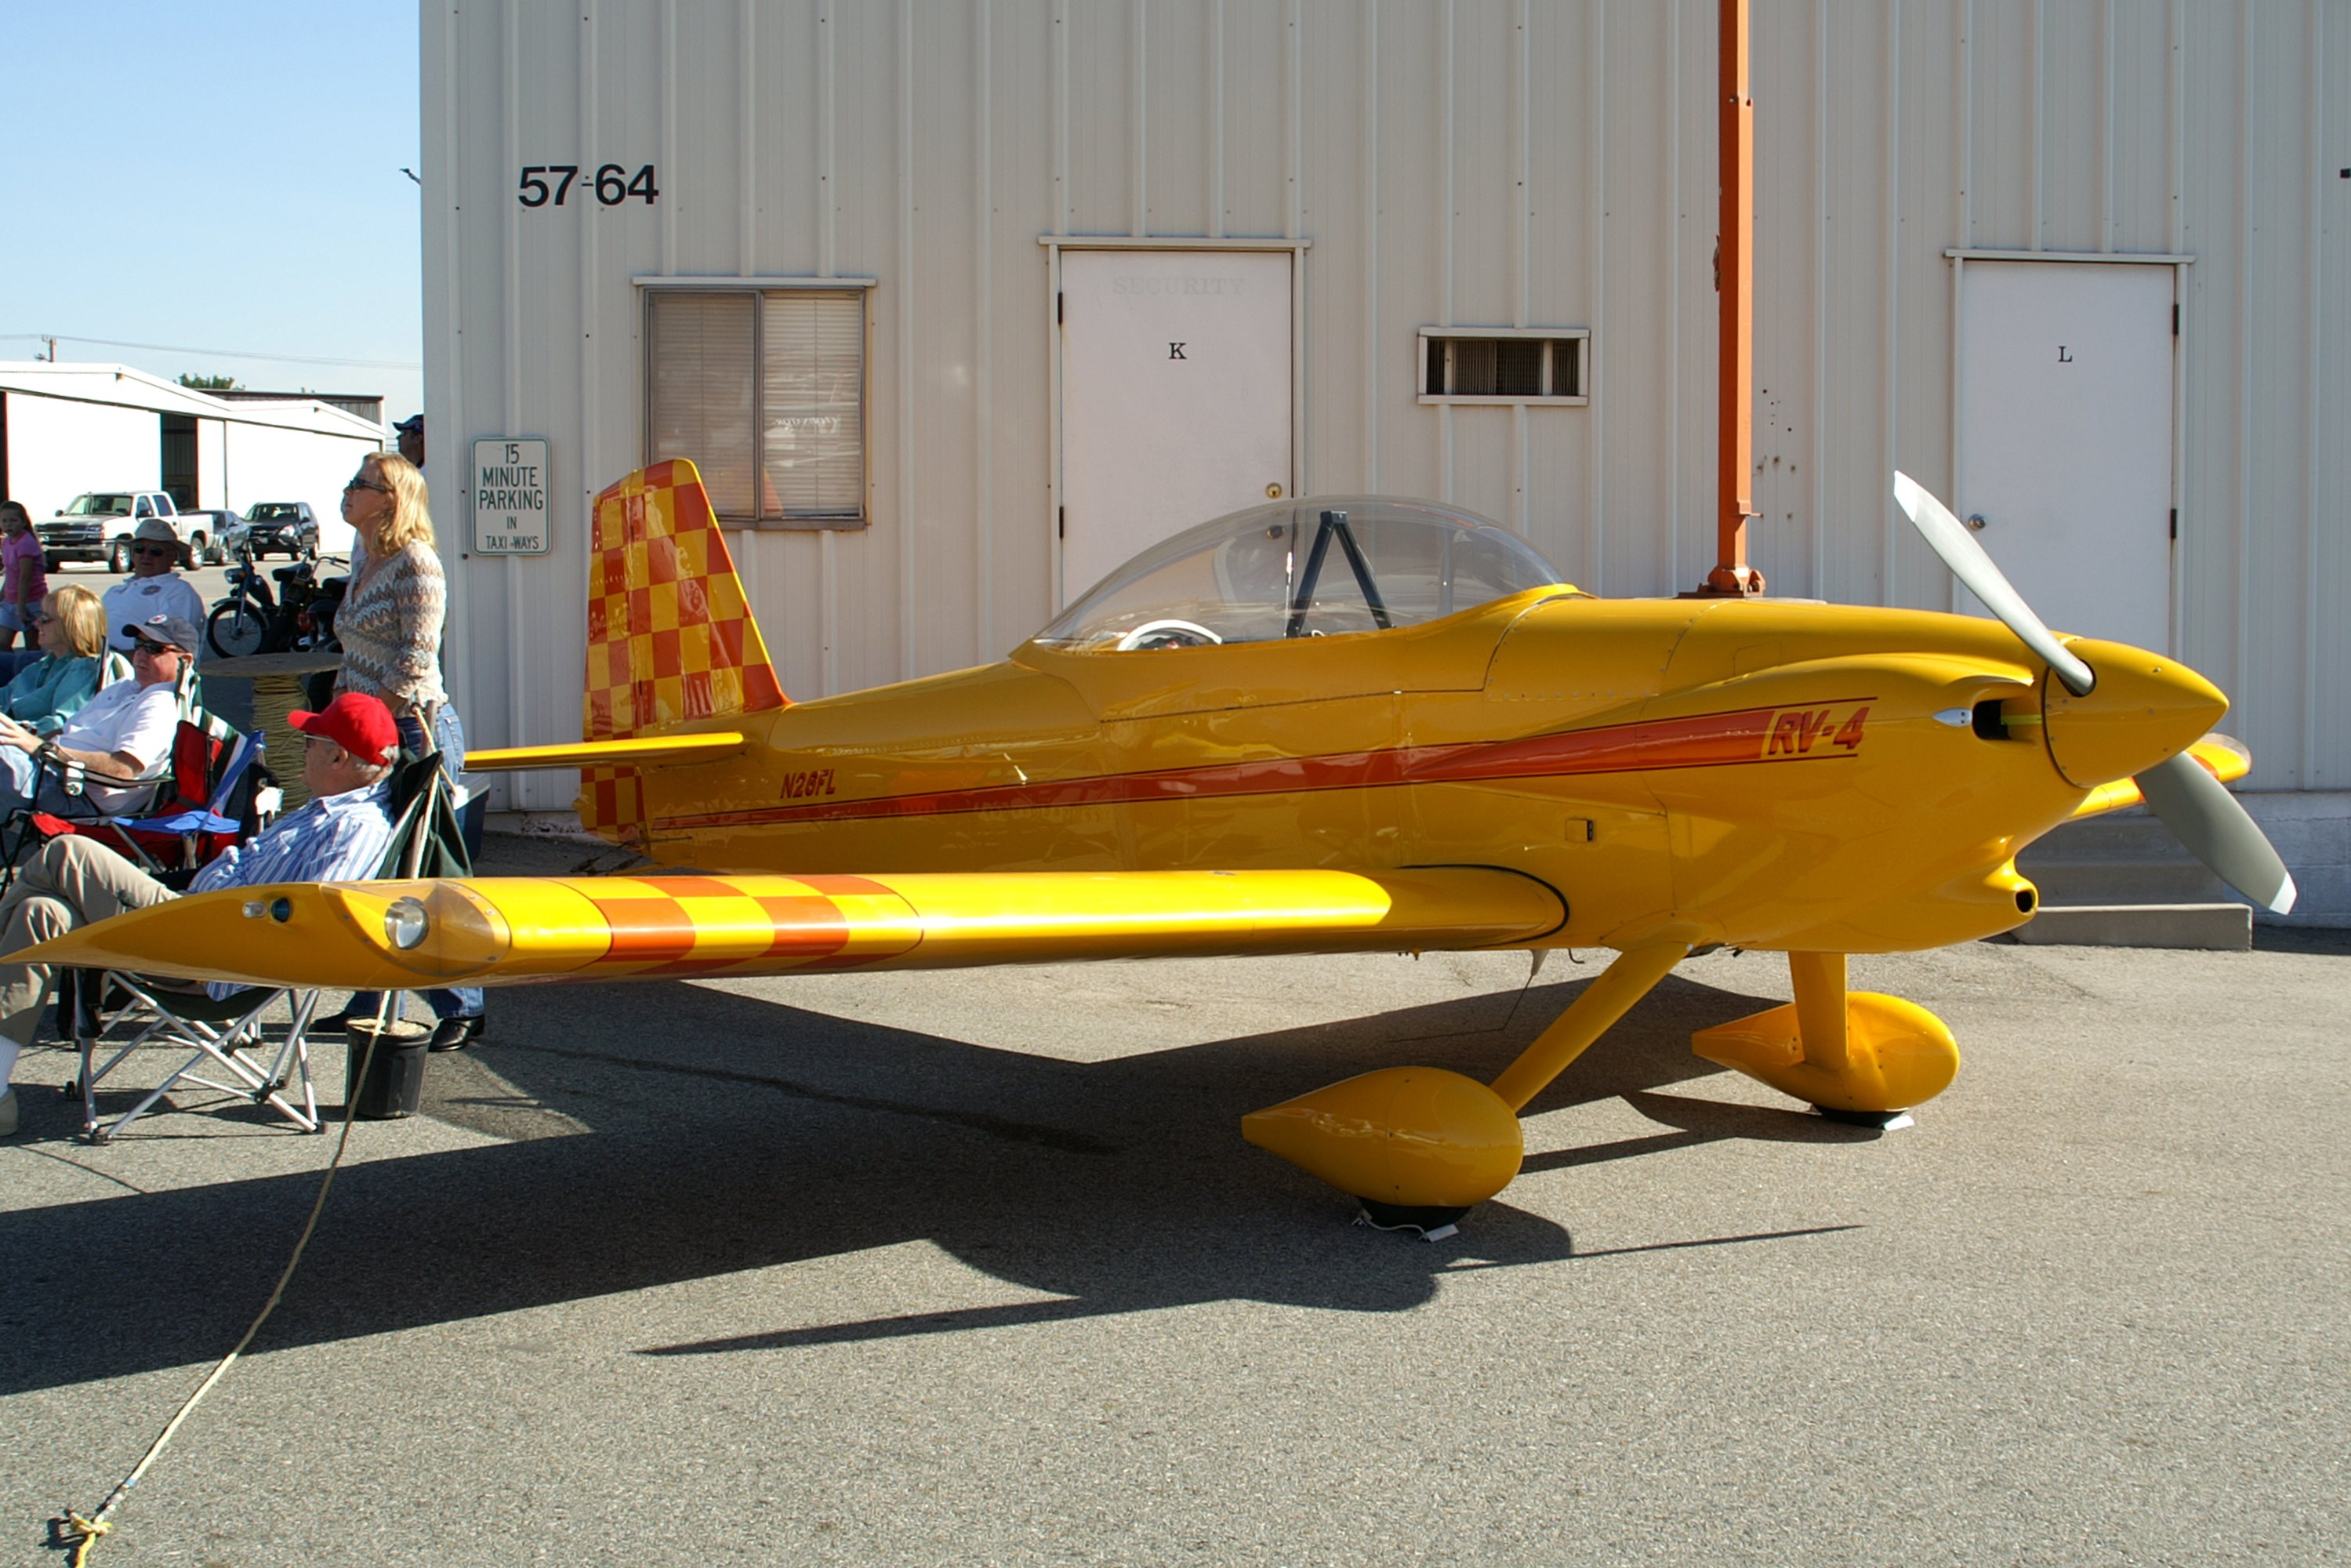 California Rv Show >> Vans RV-4, Two-seat single-engine low-wing kit-built aircraft